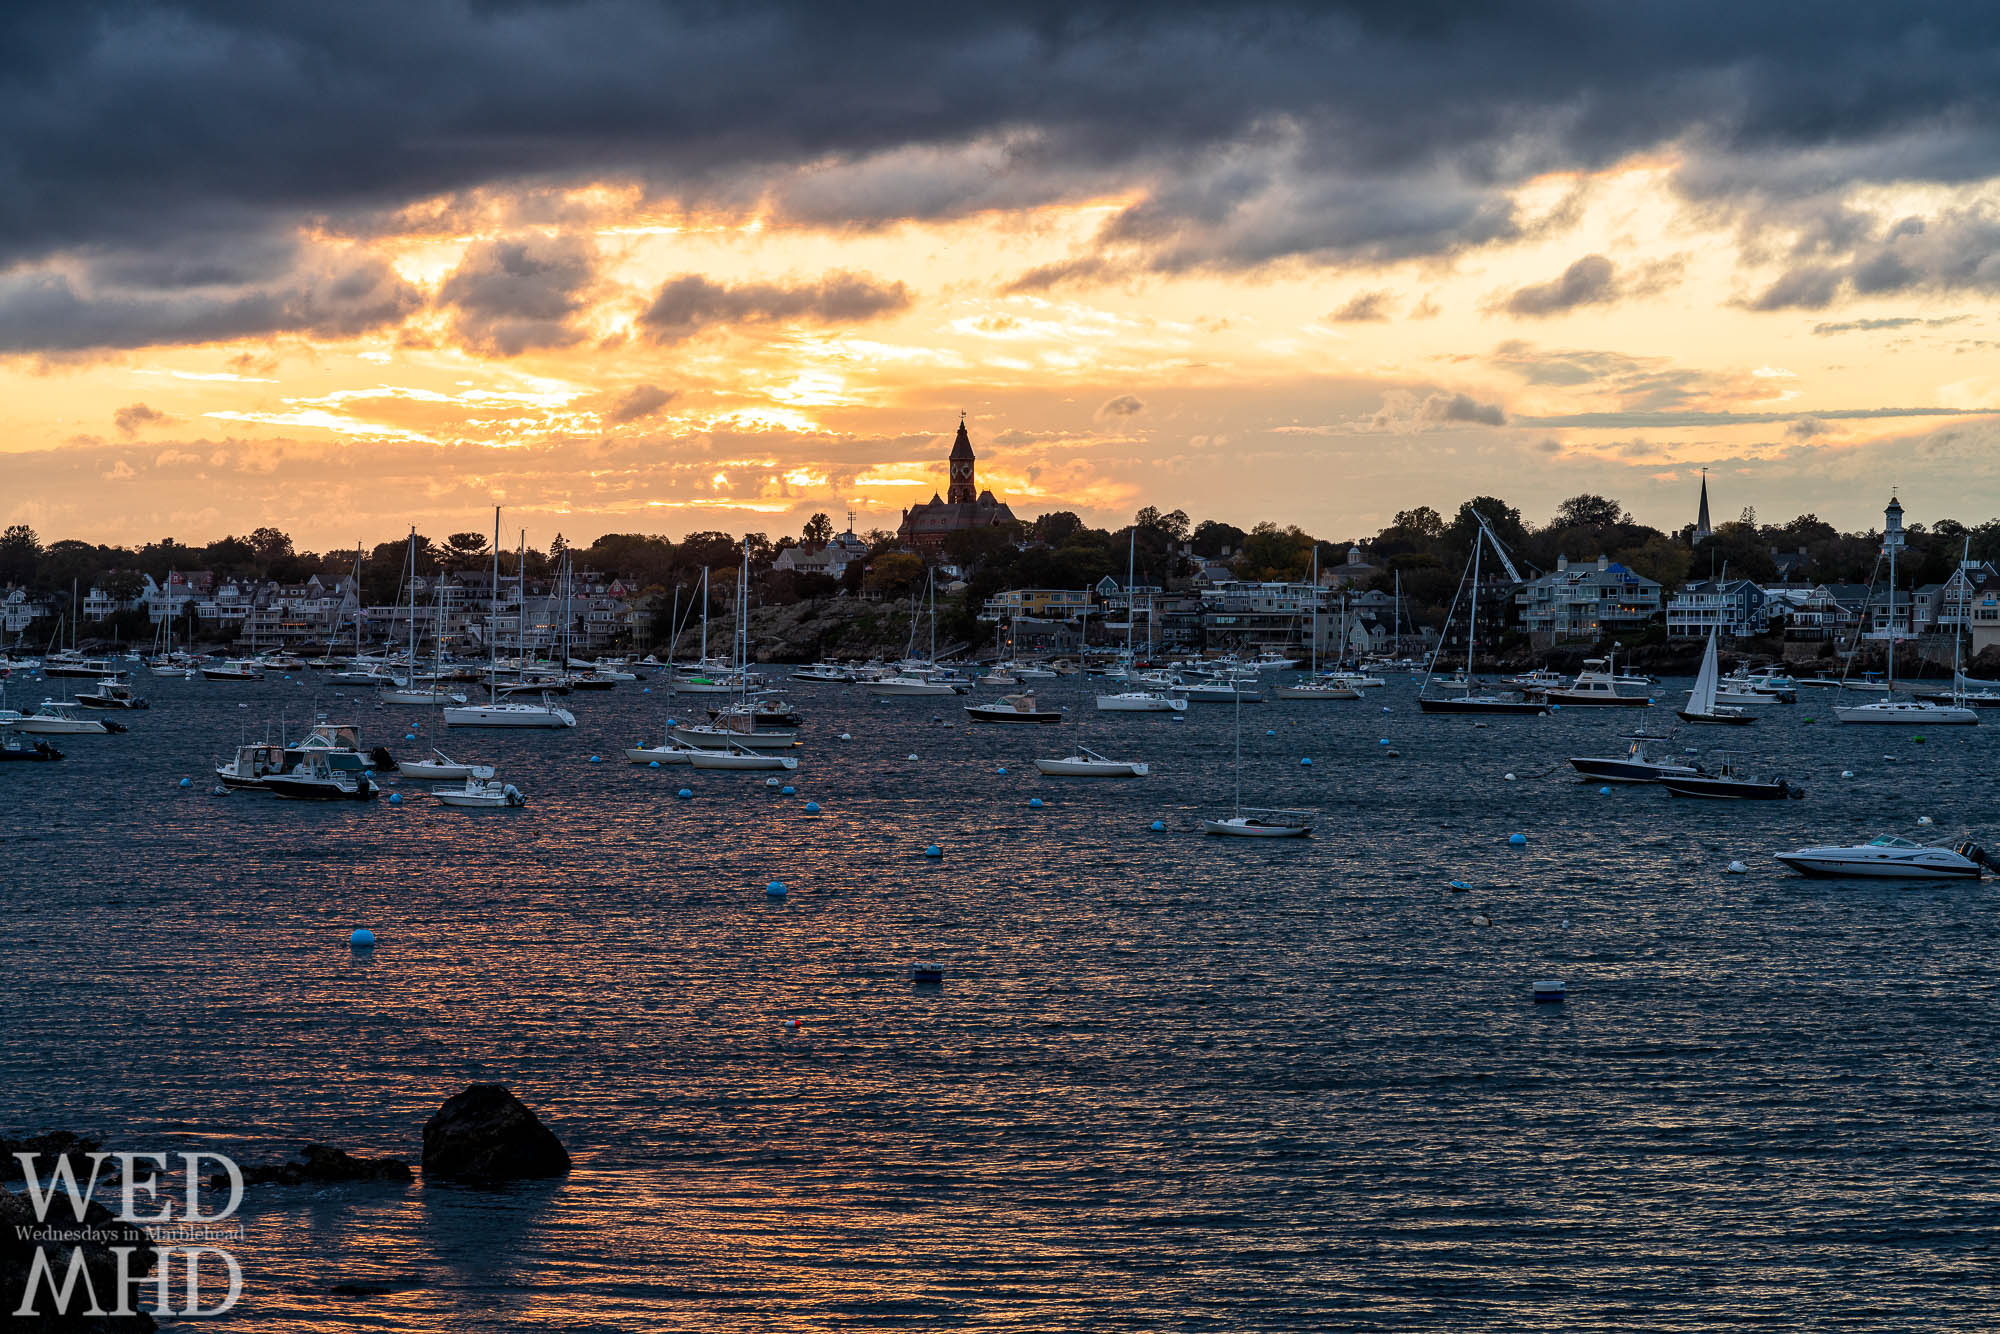 A hint of sunset shines over Abbot Hall and sets a glow on the harbor with a lone rock casting shadows on the water